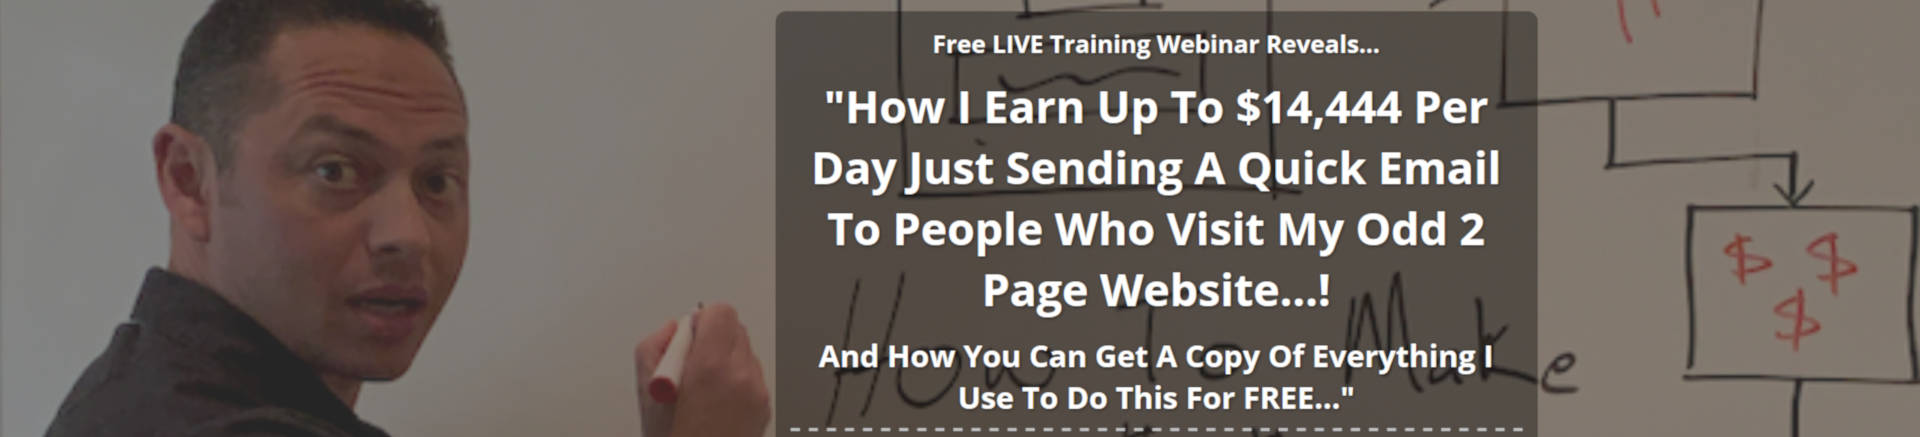 Cheap  Training Program 1k A Day Fast Track Full Specifications